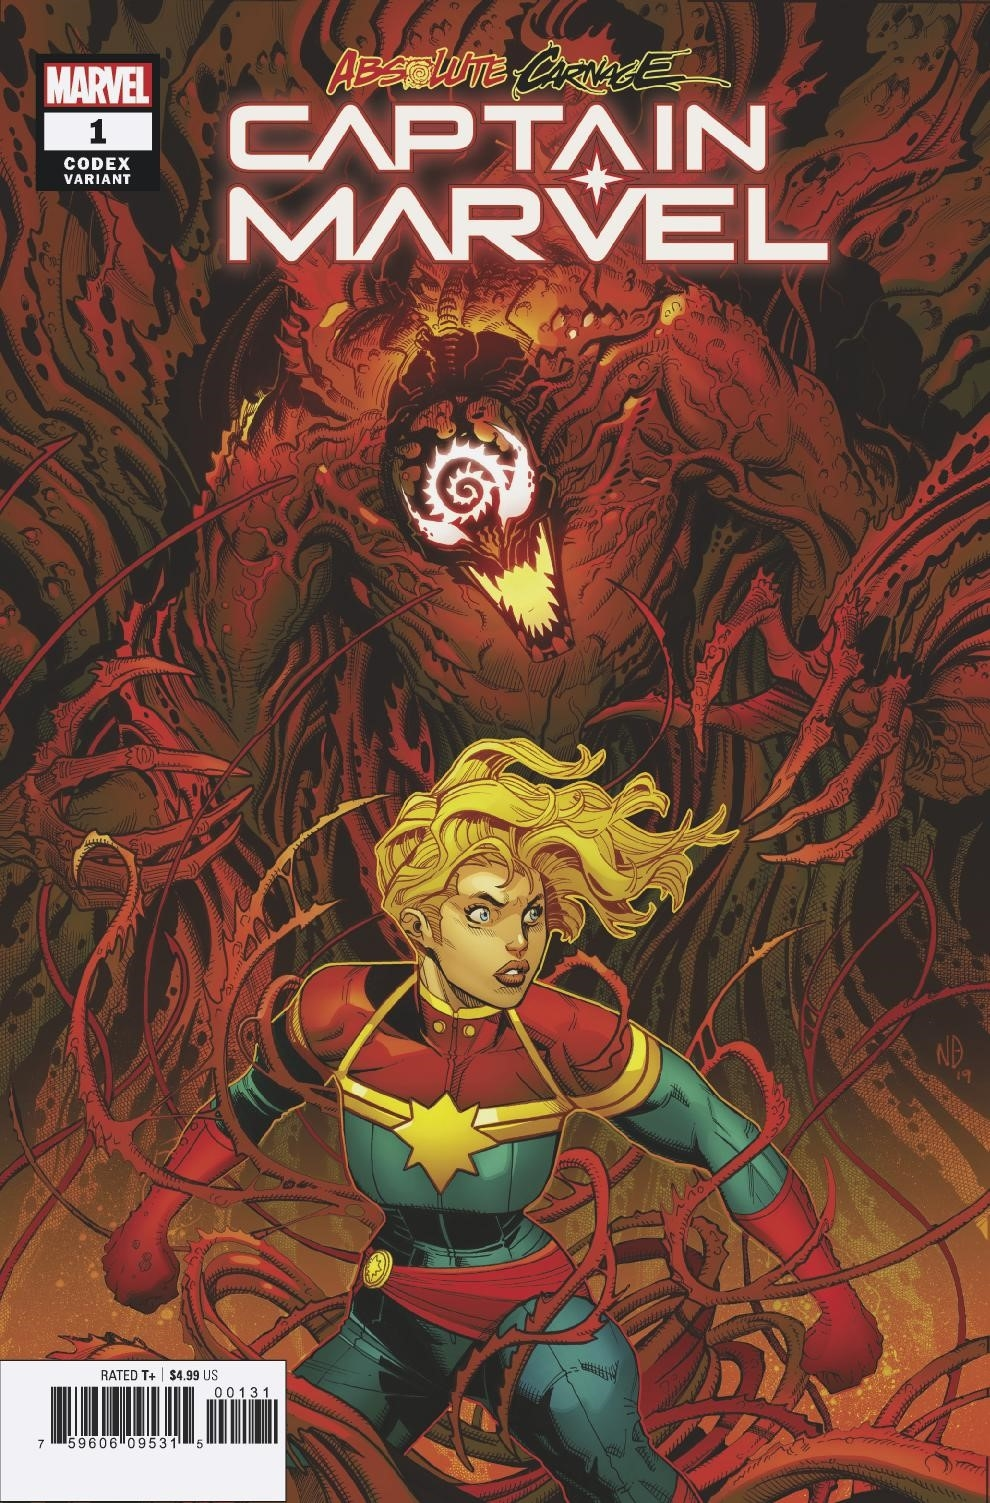 ABSOLUTE CARNAGE CAPTAIN MARVEL #1 CODEX VAR AC